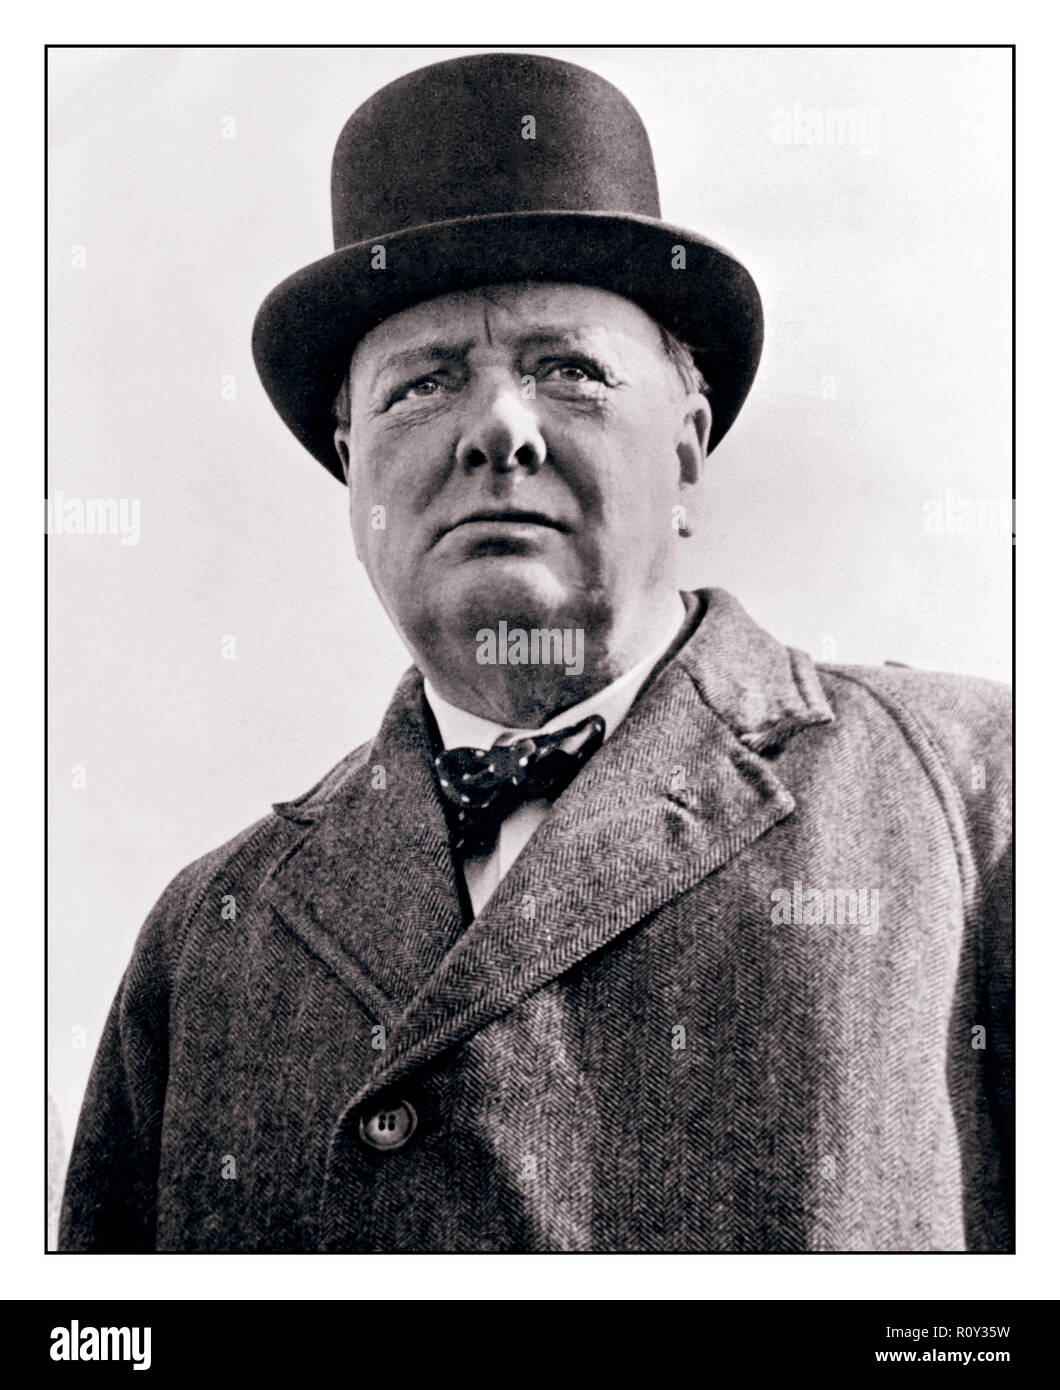 WINSTON CHURCHILL  PORTRAIT WW2 WORLD WAR 2 vintage image of  Sir Winston Leonard Spencer-Churchill a British politician, army officer, and writer, who was Prime Minister of the United Kingdom from 1940 to 1945 and again from 1951 to 1955. As Prime Minister, Churchill led Britain to victory in WW2 the Second World War - Stock Image